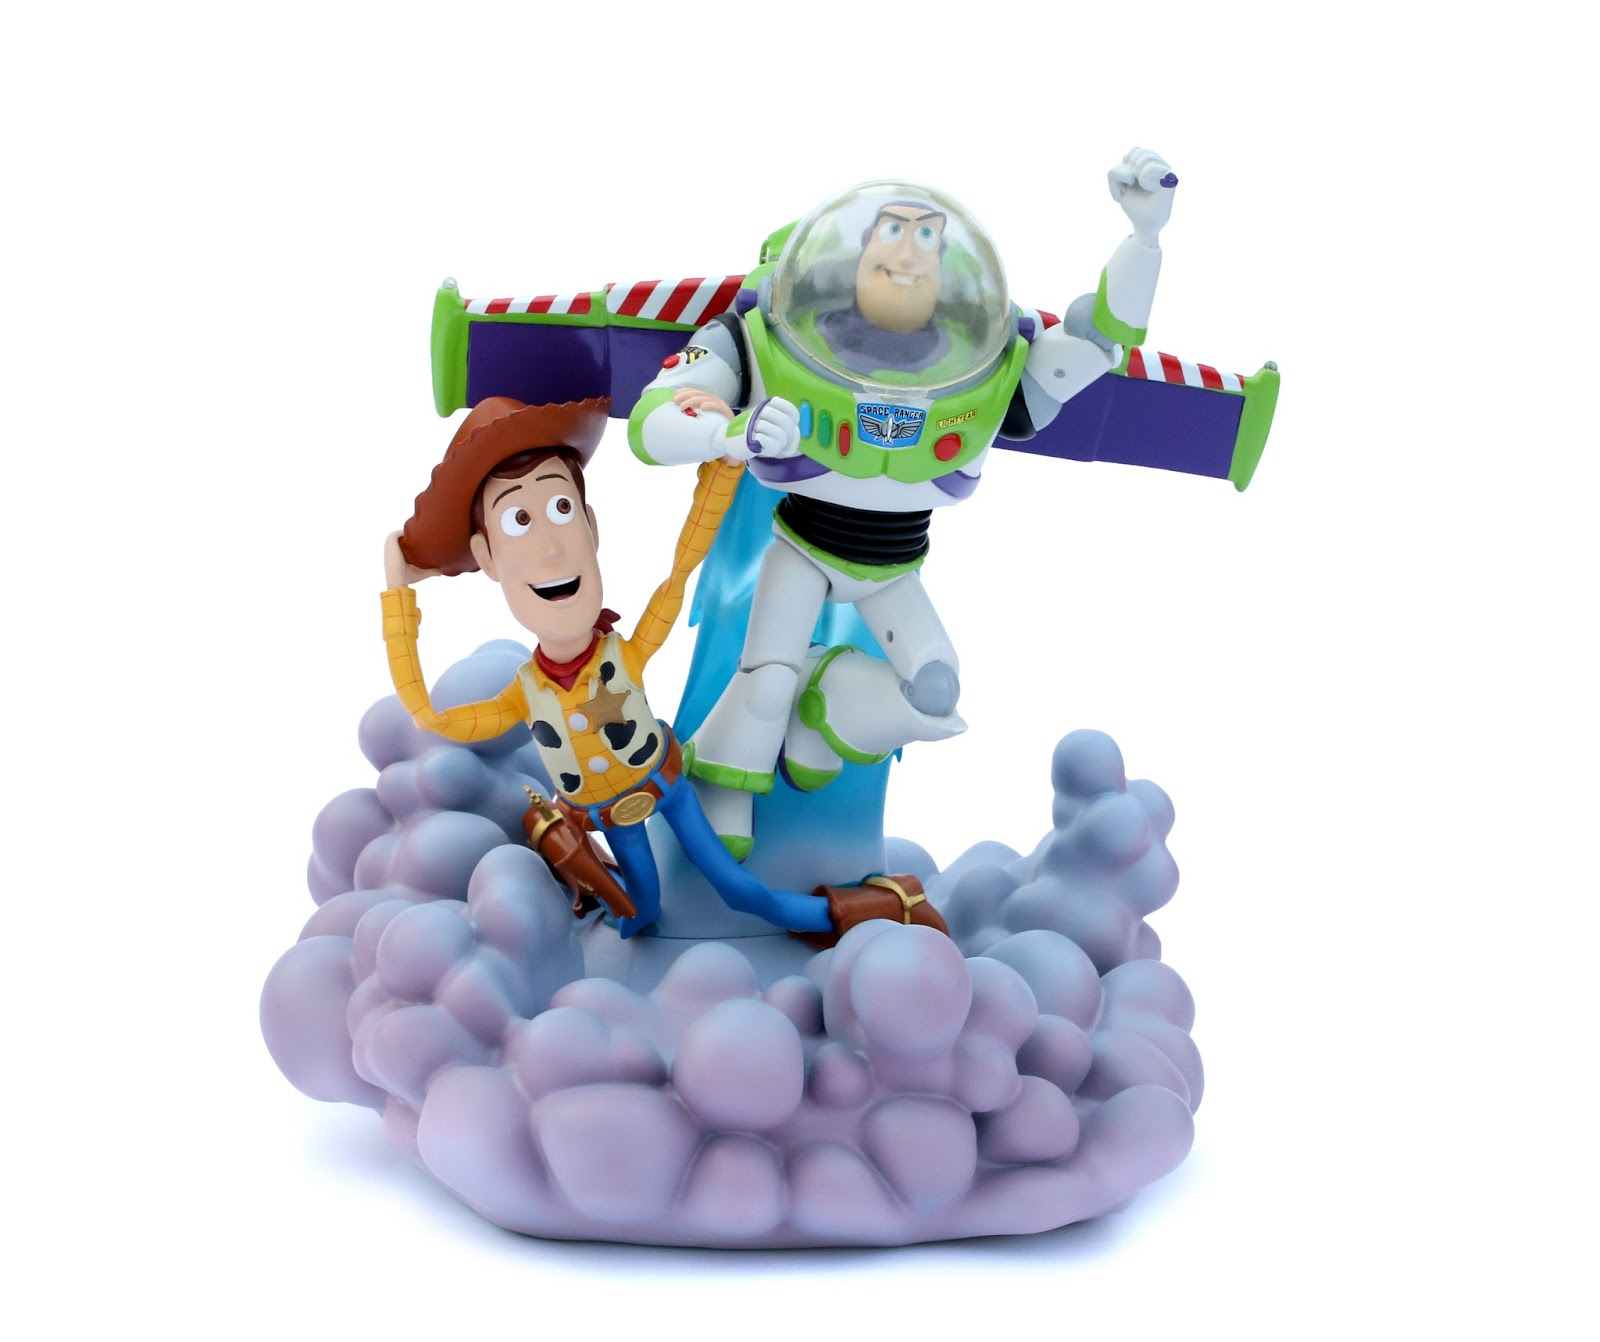 Toy Story Buzz & Woody Deluxe Light-Up Figurine Sculpture Ron Cohee